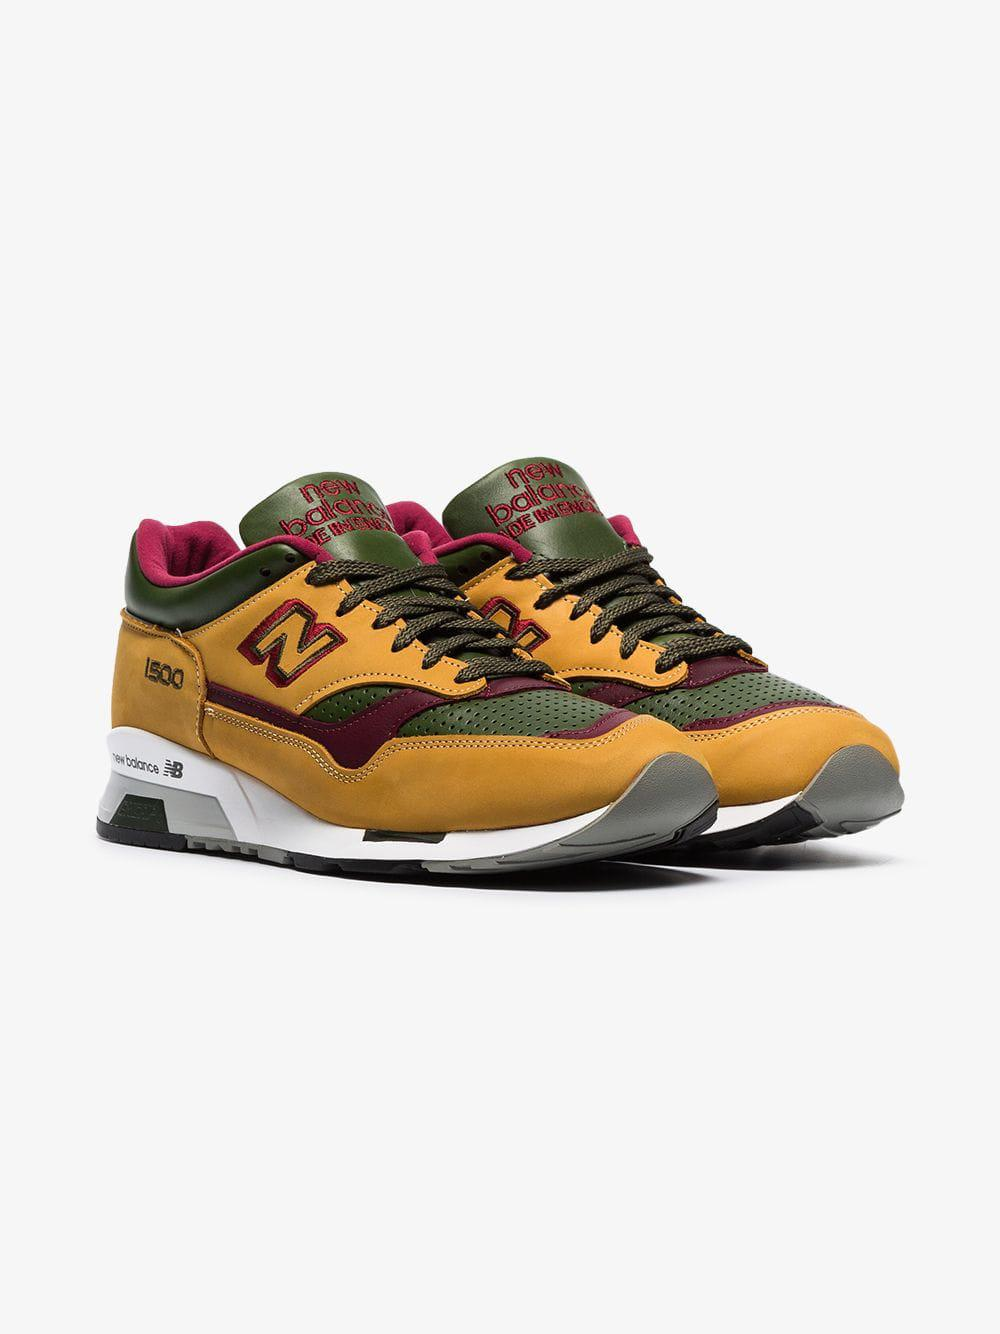 Lyst - New Balance Yellow Green And Purple M1500 Trainers in Brown ... 747ead3434056